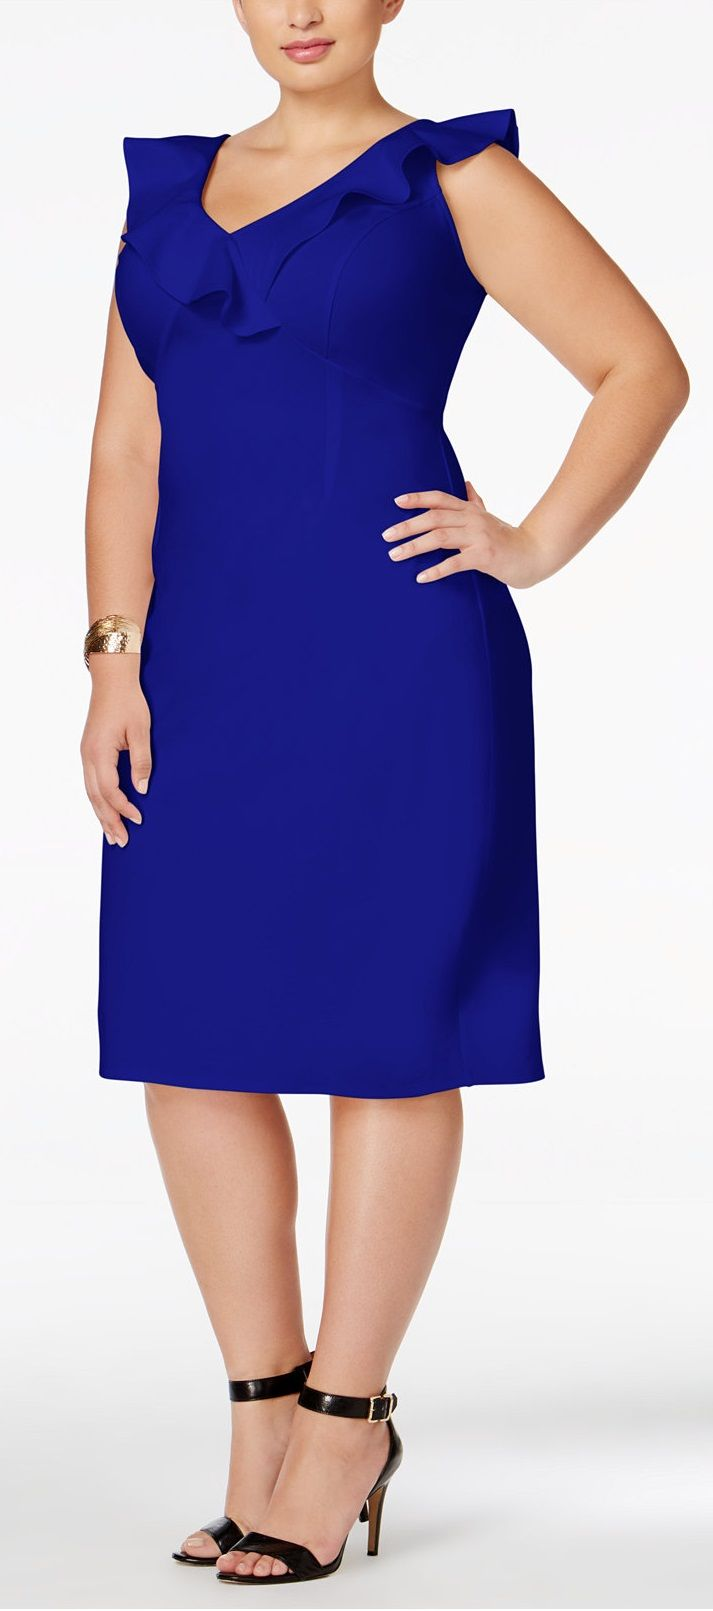 Bodycon is more work than I care for, but this is so pretty, and ...